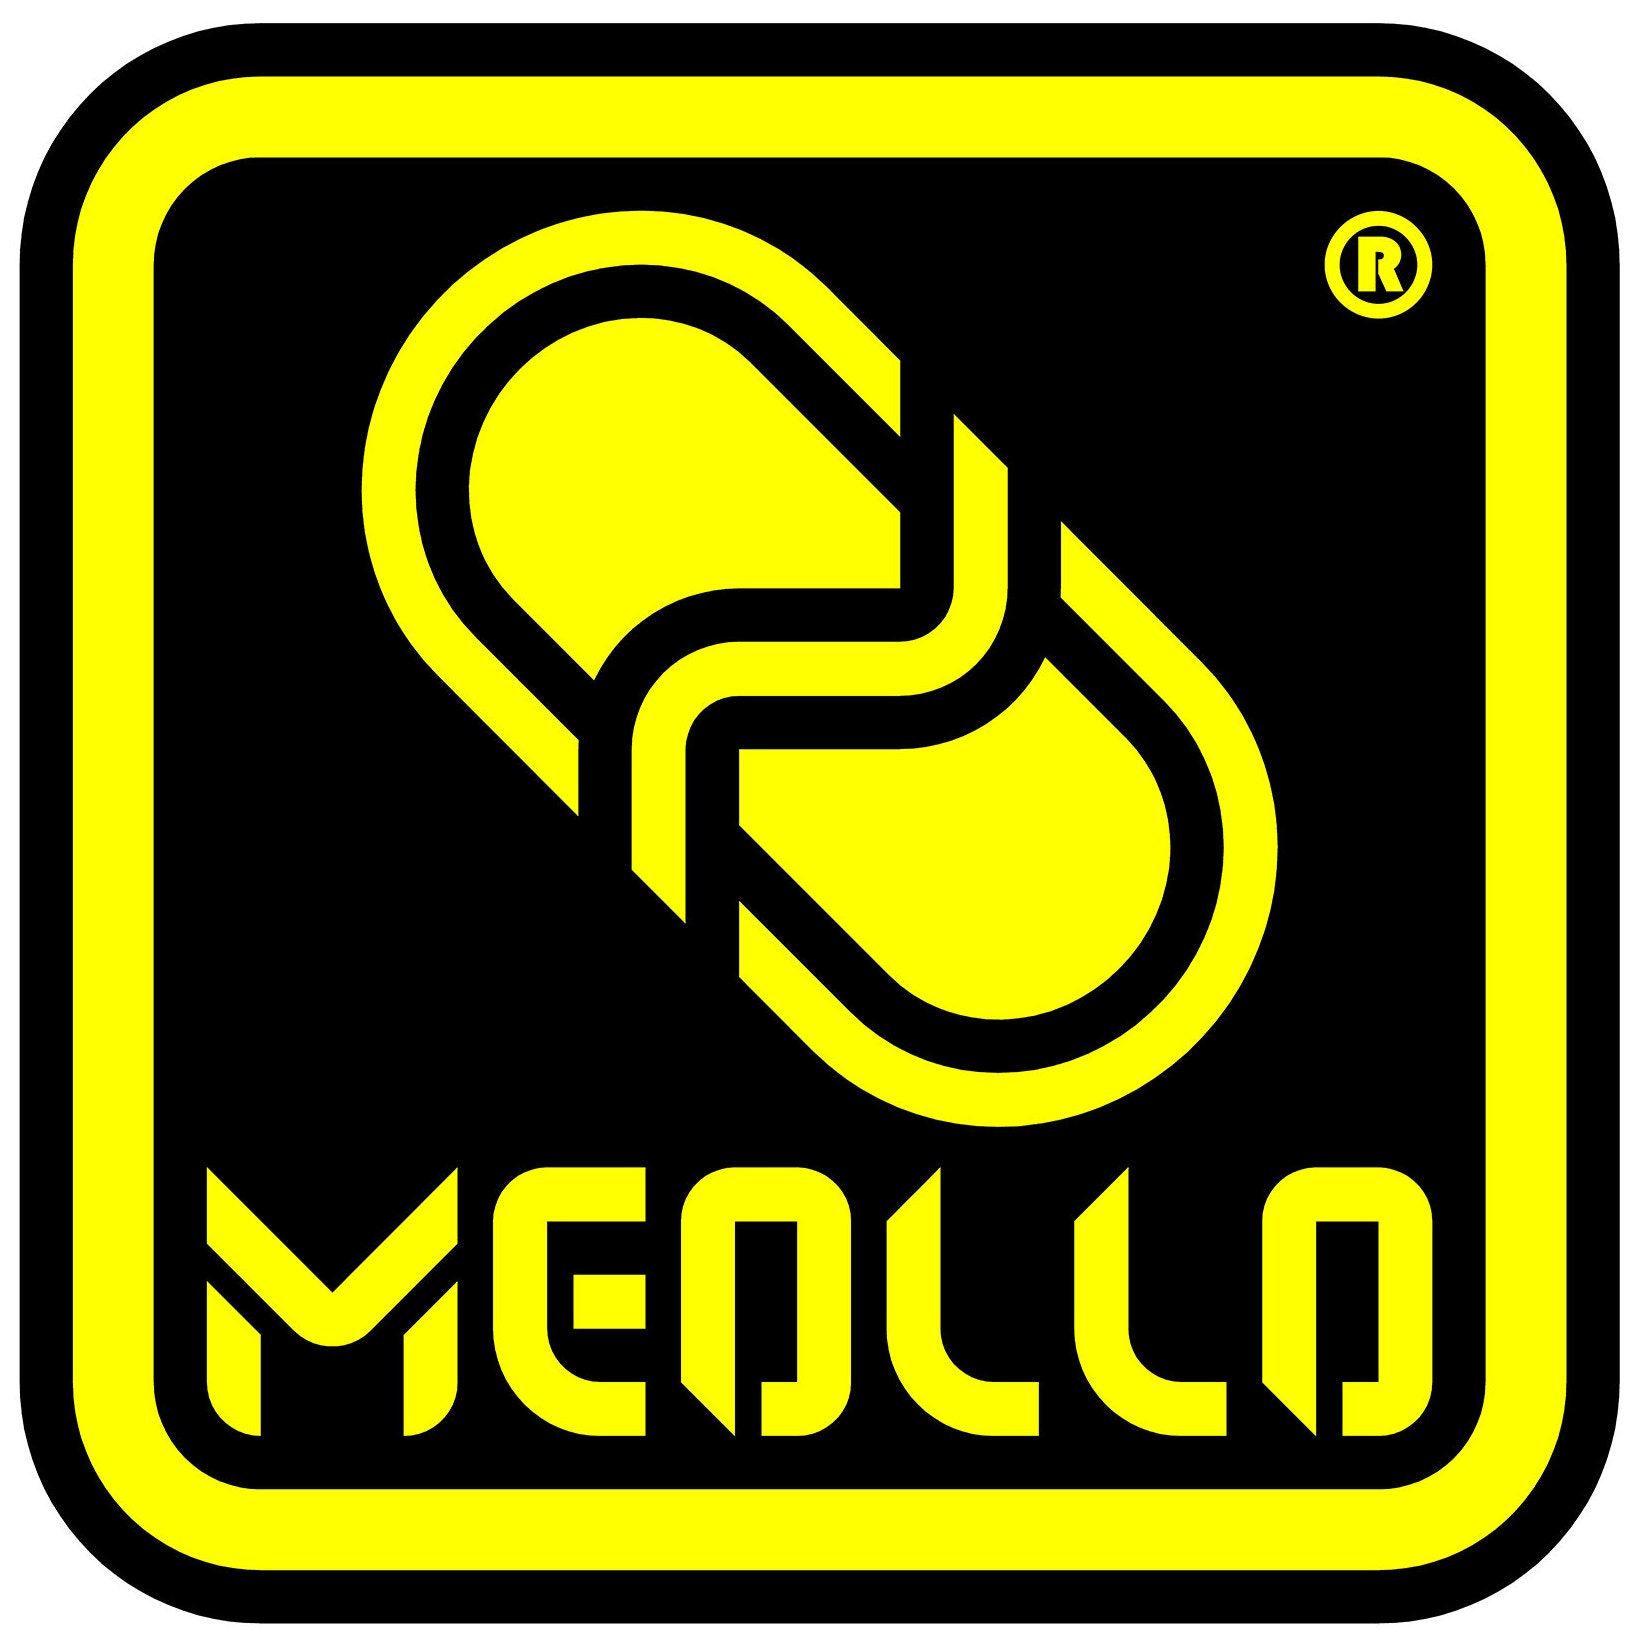 MEOLLO. Global Local. by MEOLLO on Etsy